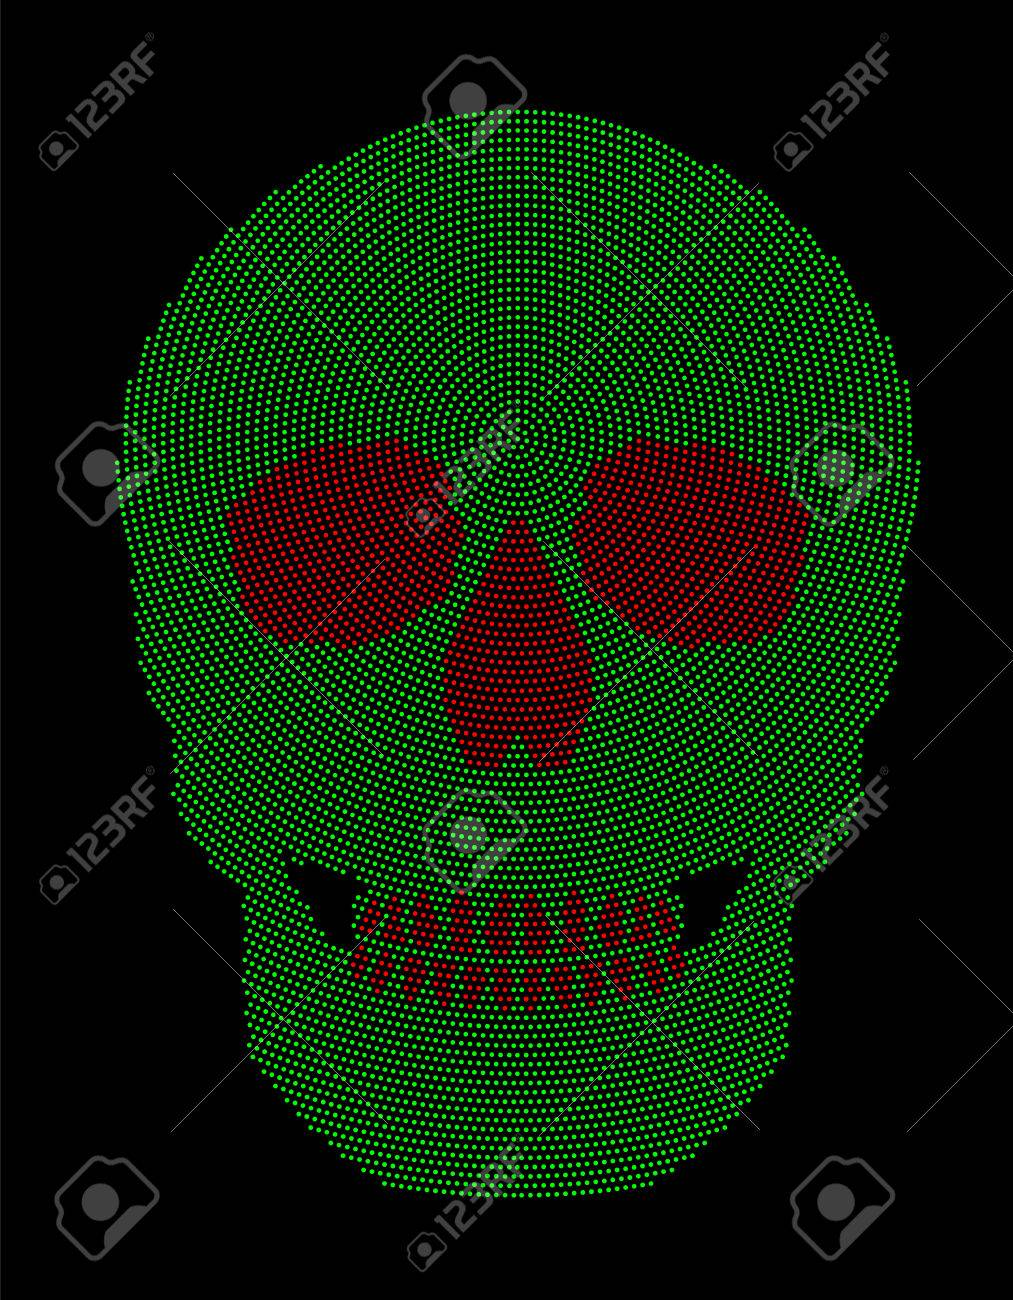 Skull Green And Red Radial Dot Pattern Symbol Of The Bone Structure